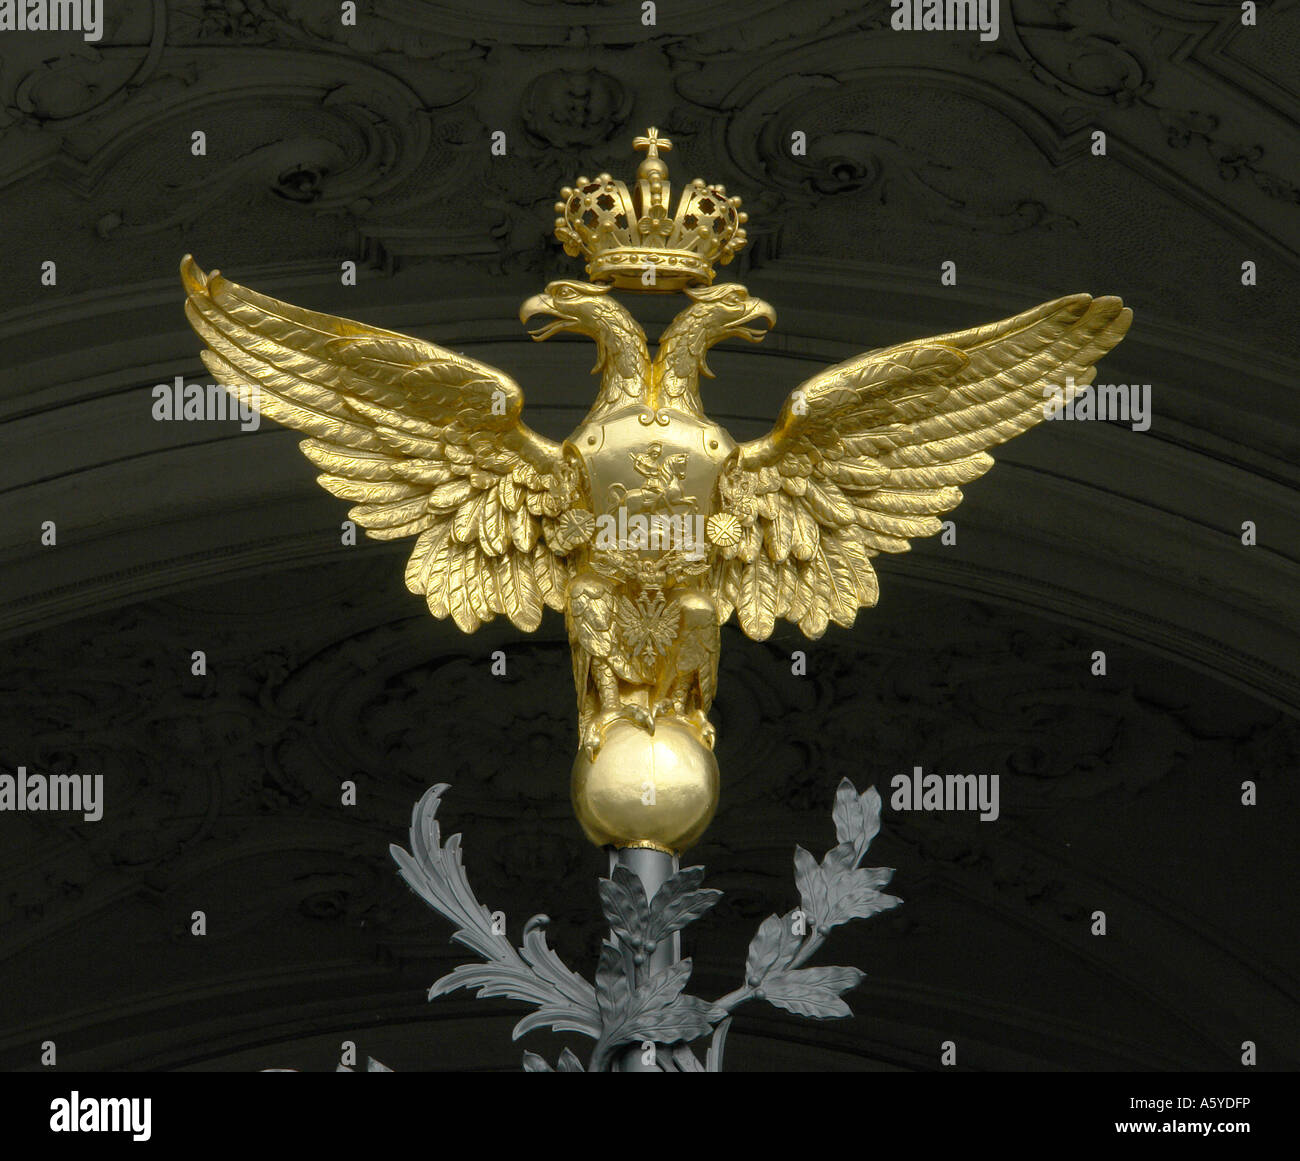 Painet Jj2018 Russia Russian Double Headed Eagle Gate Hermitage Winter Palace Saint St Petersburg 20060801